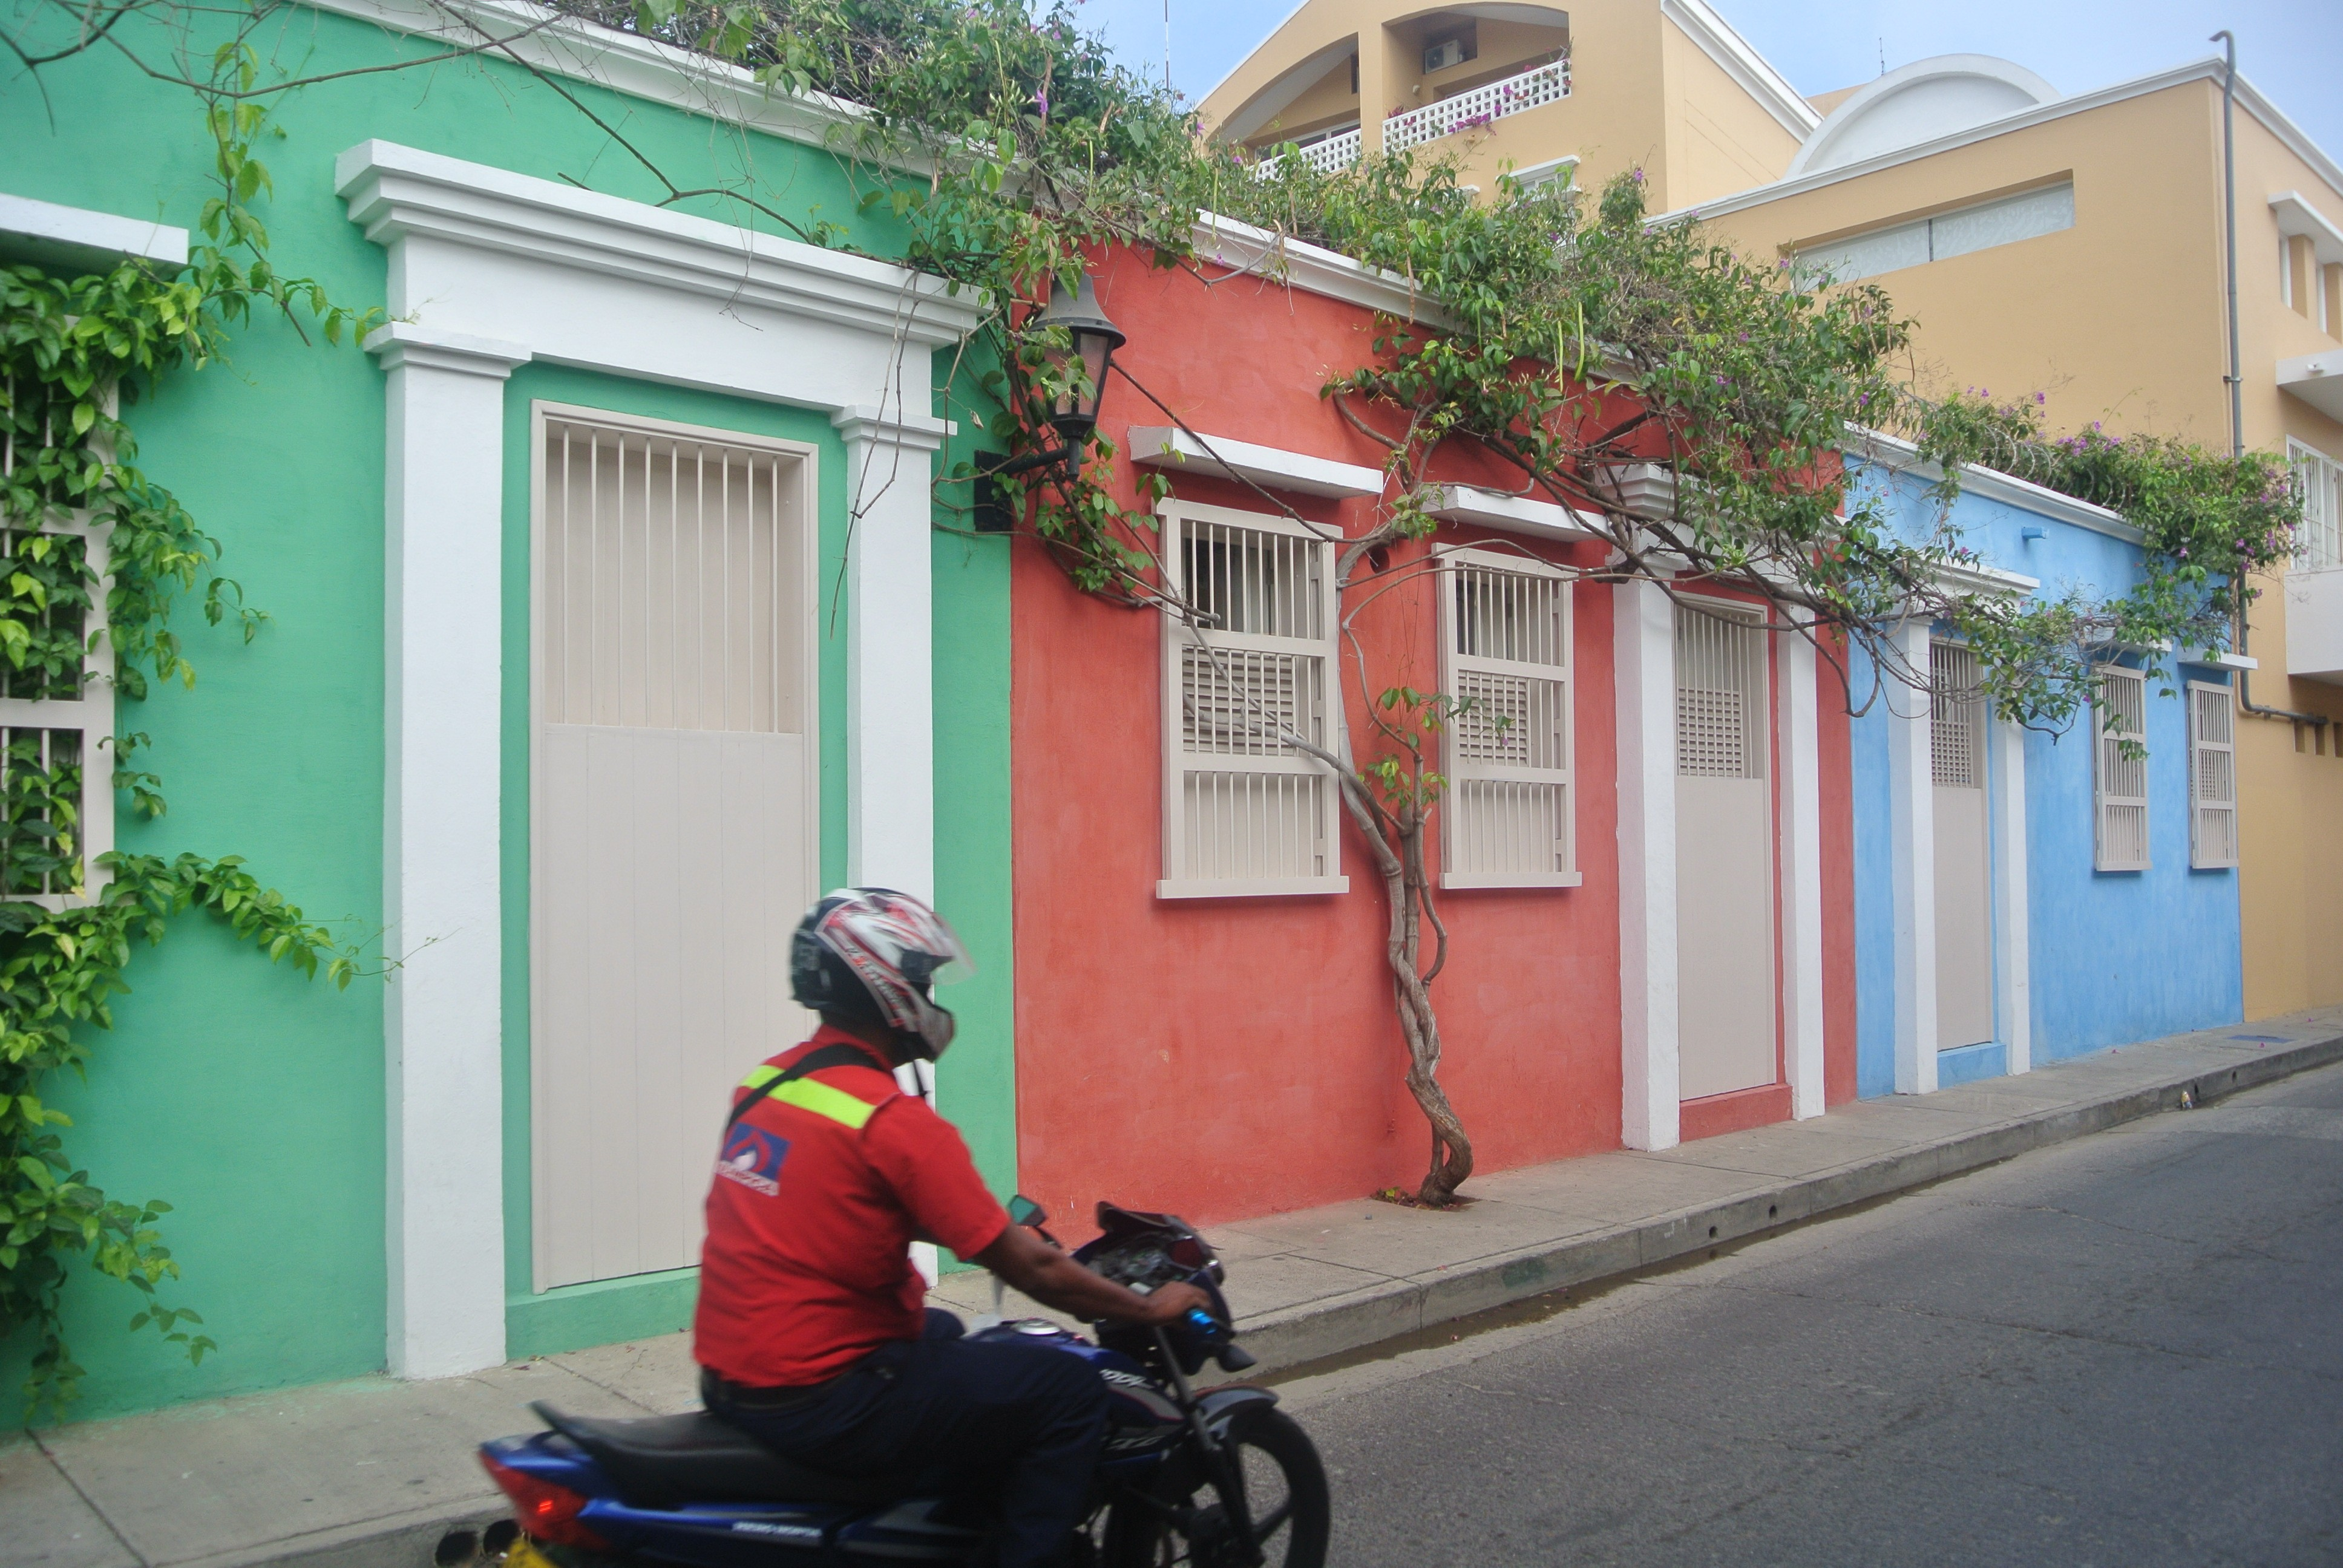 Getsemaní, Cartagena. Pastel Colour Houses with moto in foreground.